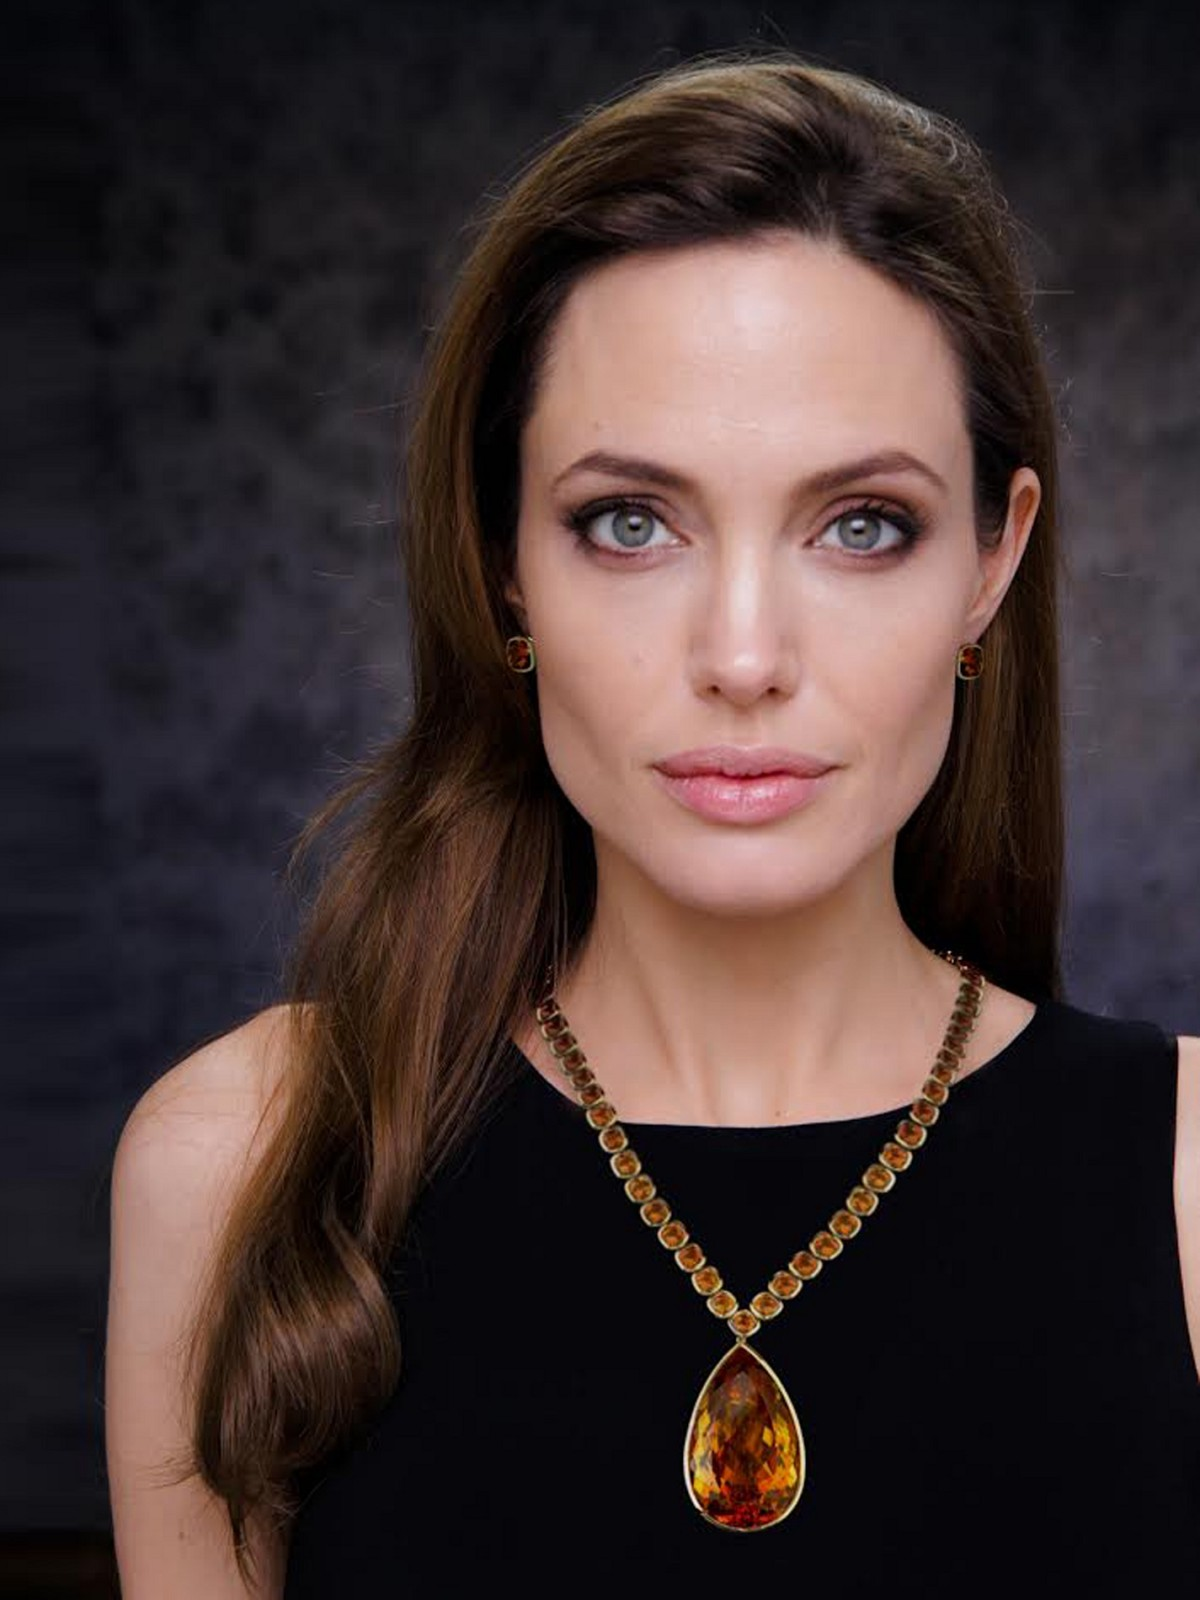 angelina jolie research essay